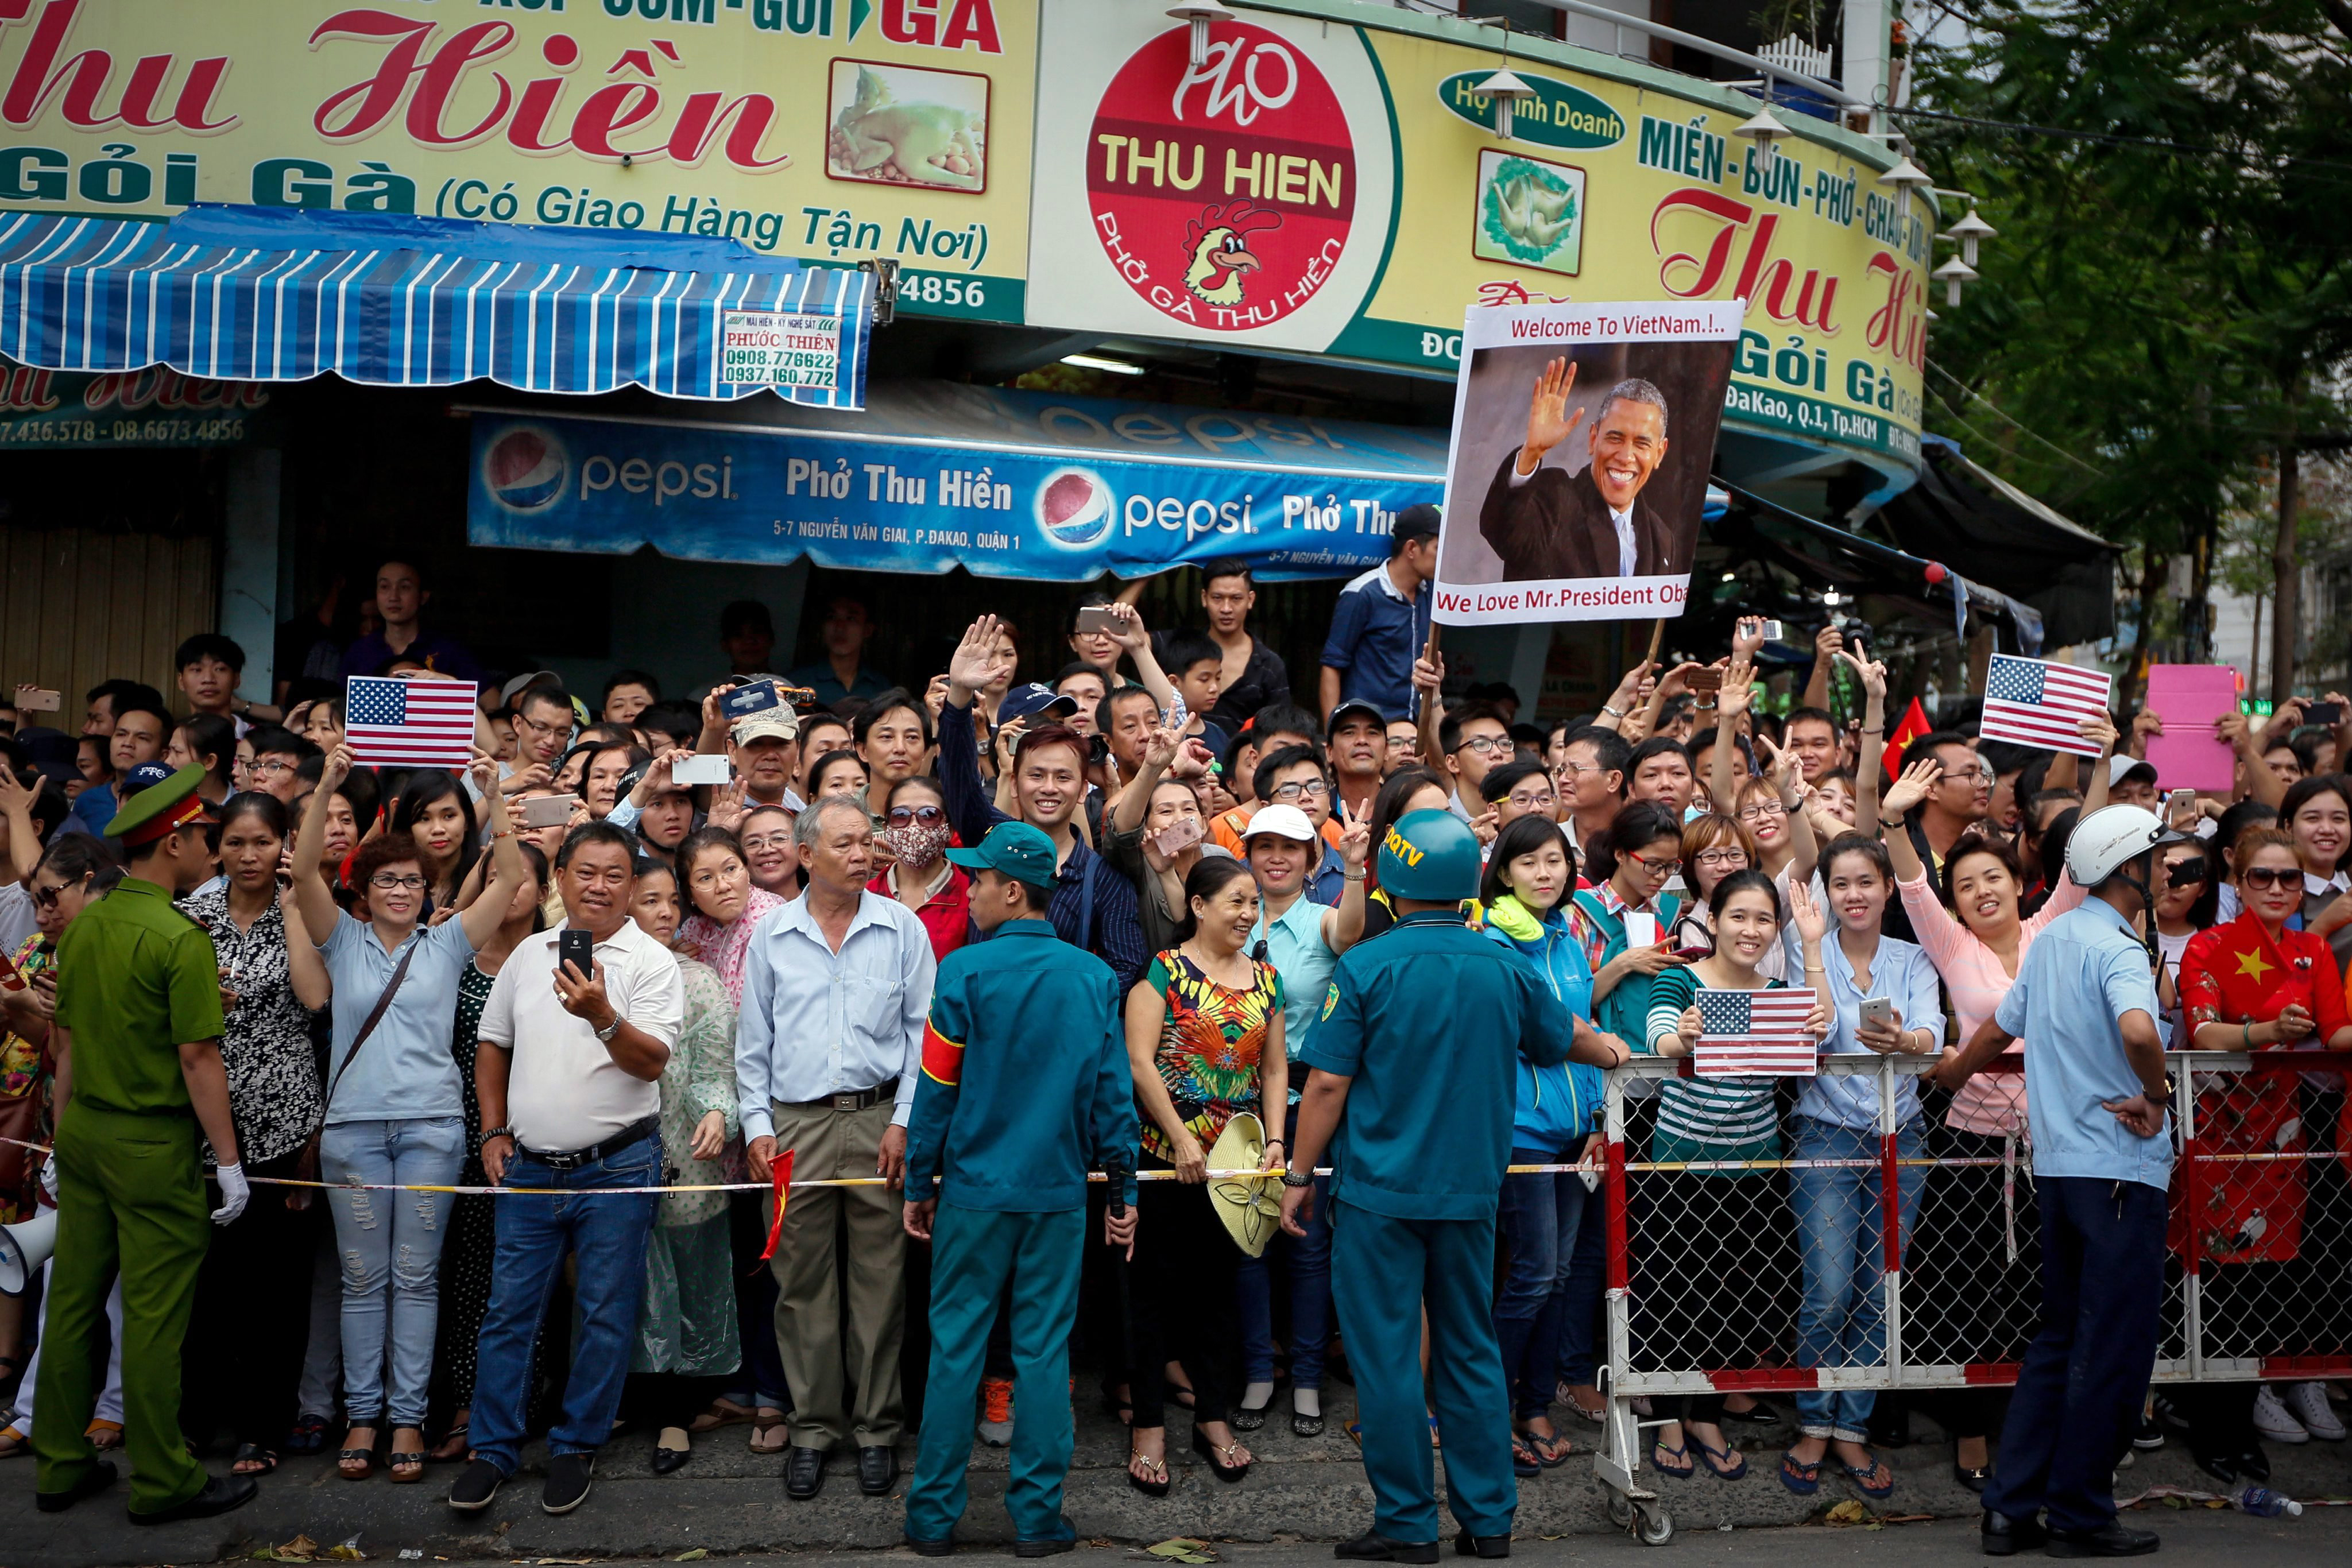 Vietnamese people wait for President Barack Obama outside the Jade Pagoda in Ho Chi Minh City, Vietnam, May 24, 2016.